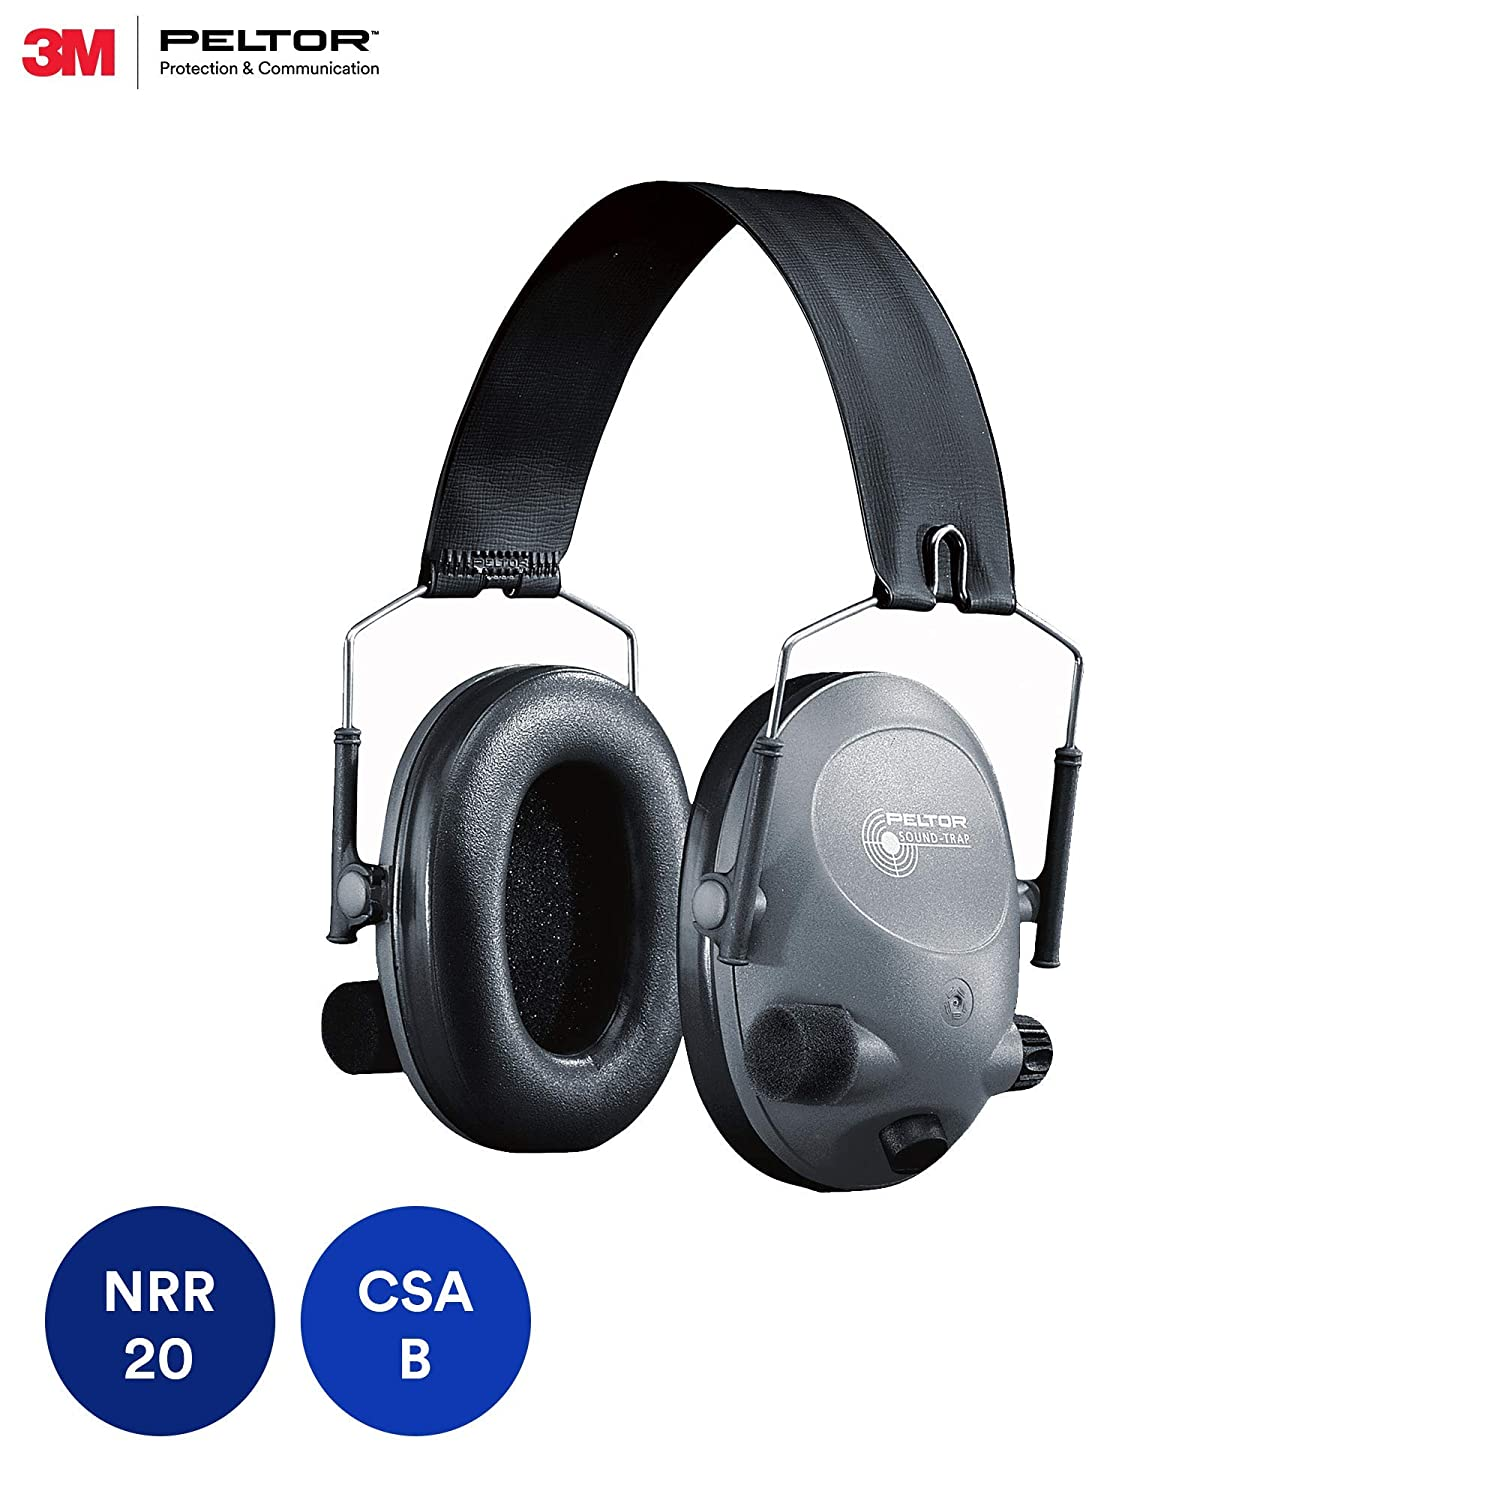 3M Peltor Tactical 6-S Slim Line Electronic Headset, Hearing Protection, Gray, Ear Protection, NRR 19 dB, Great for hunters and shooters